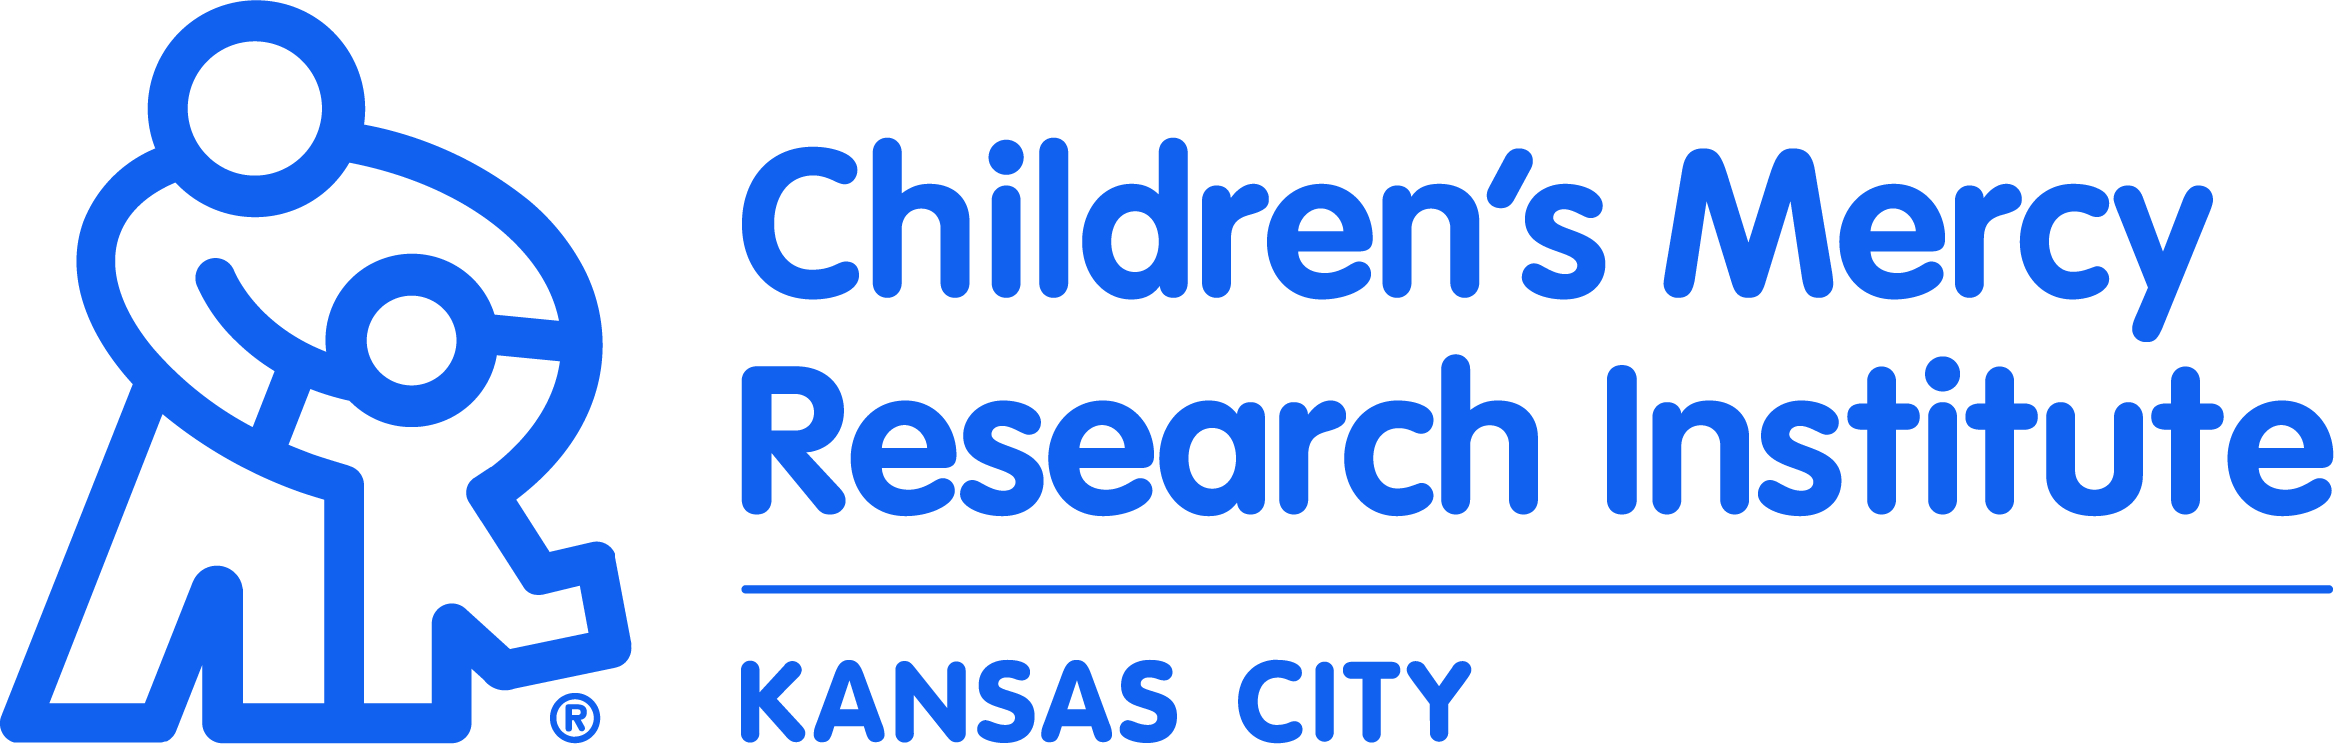 Children's Mercy Research Institute